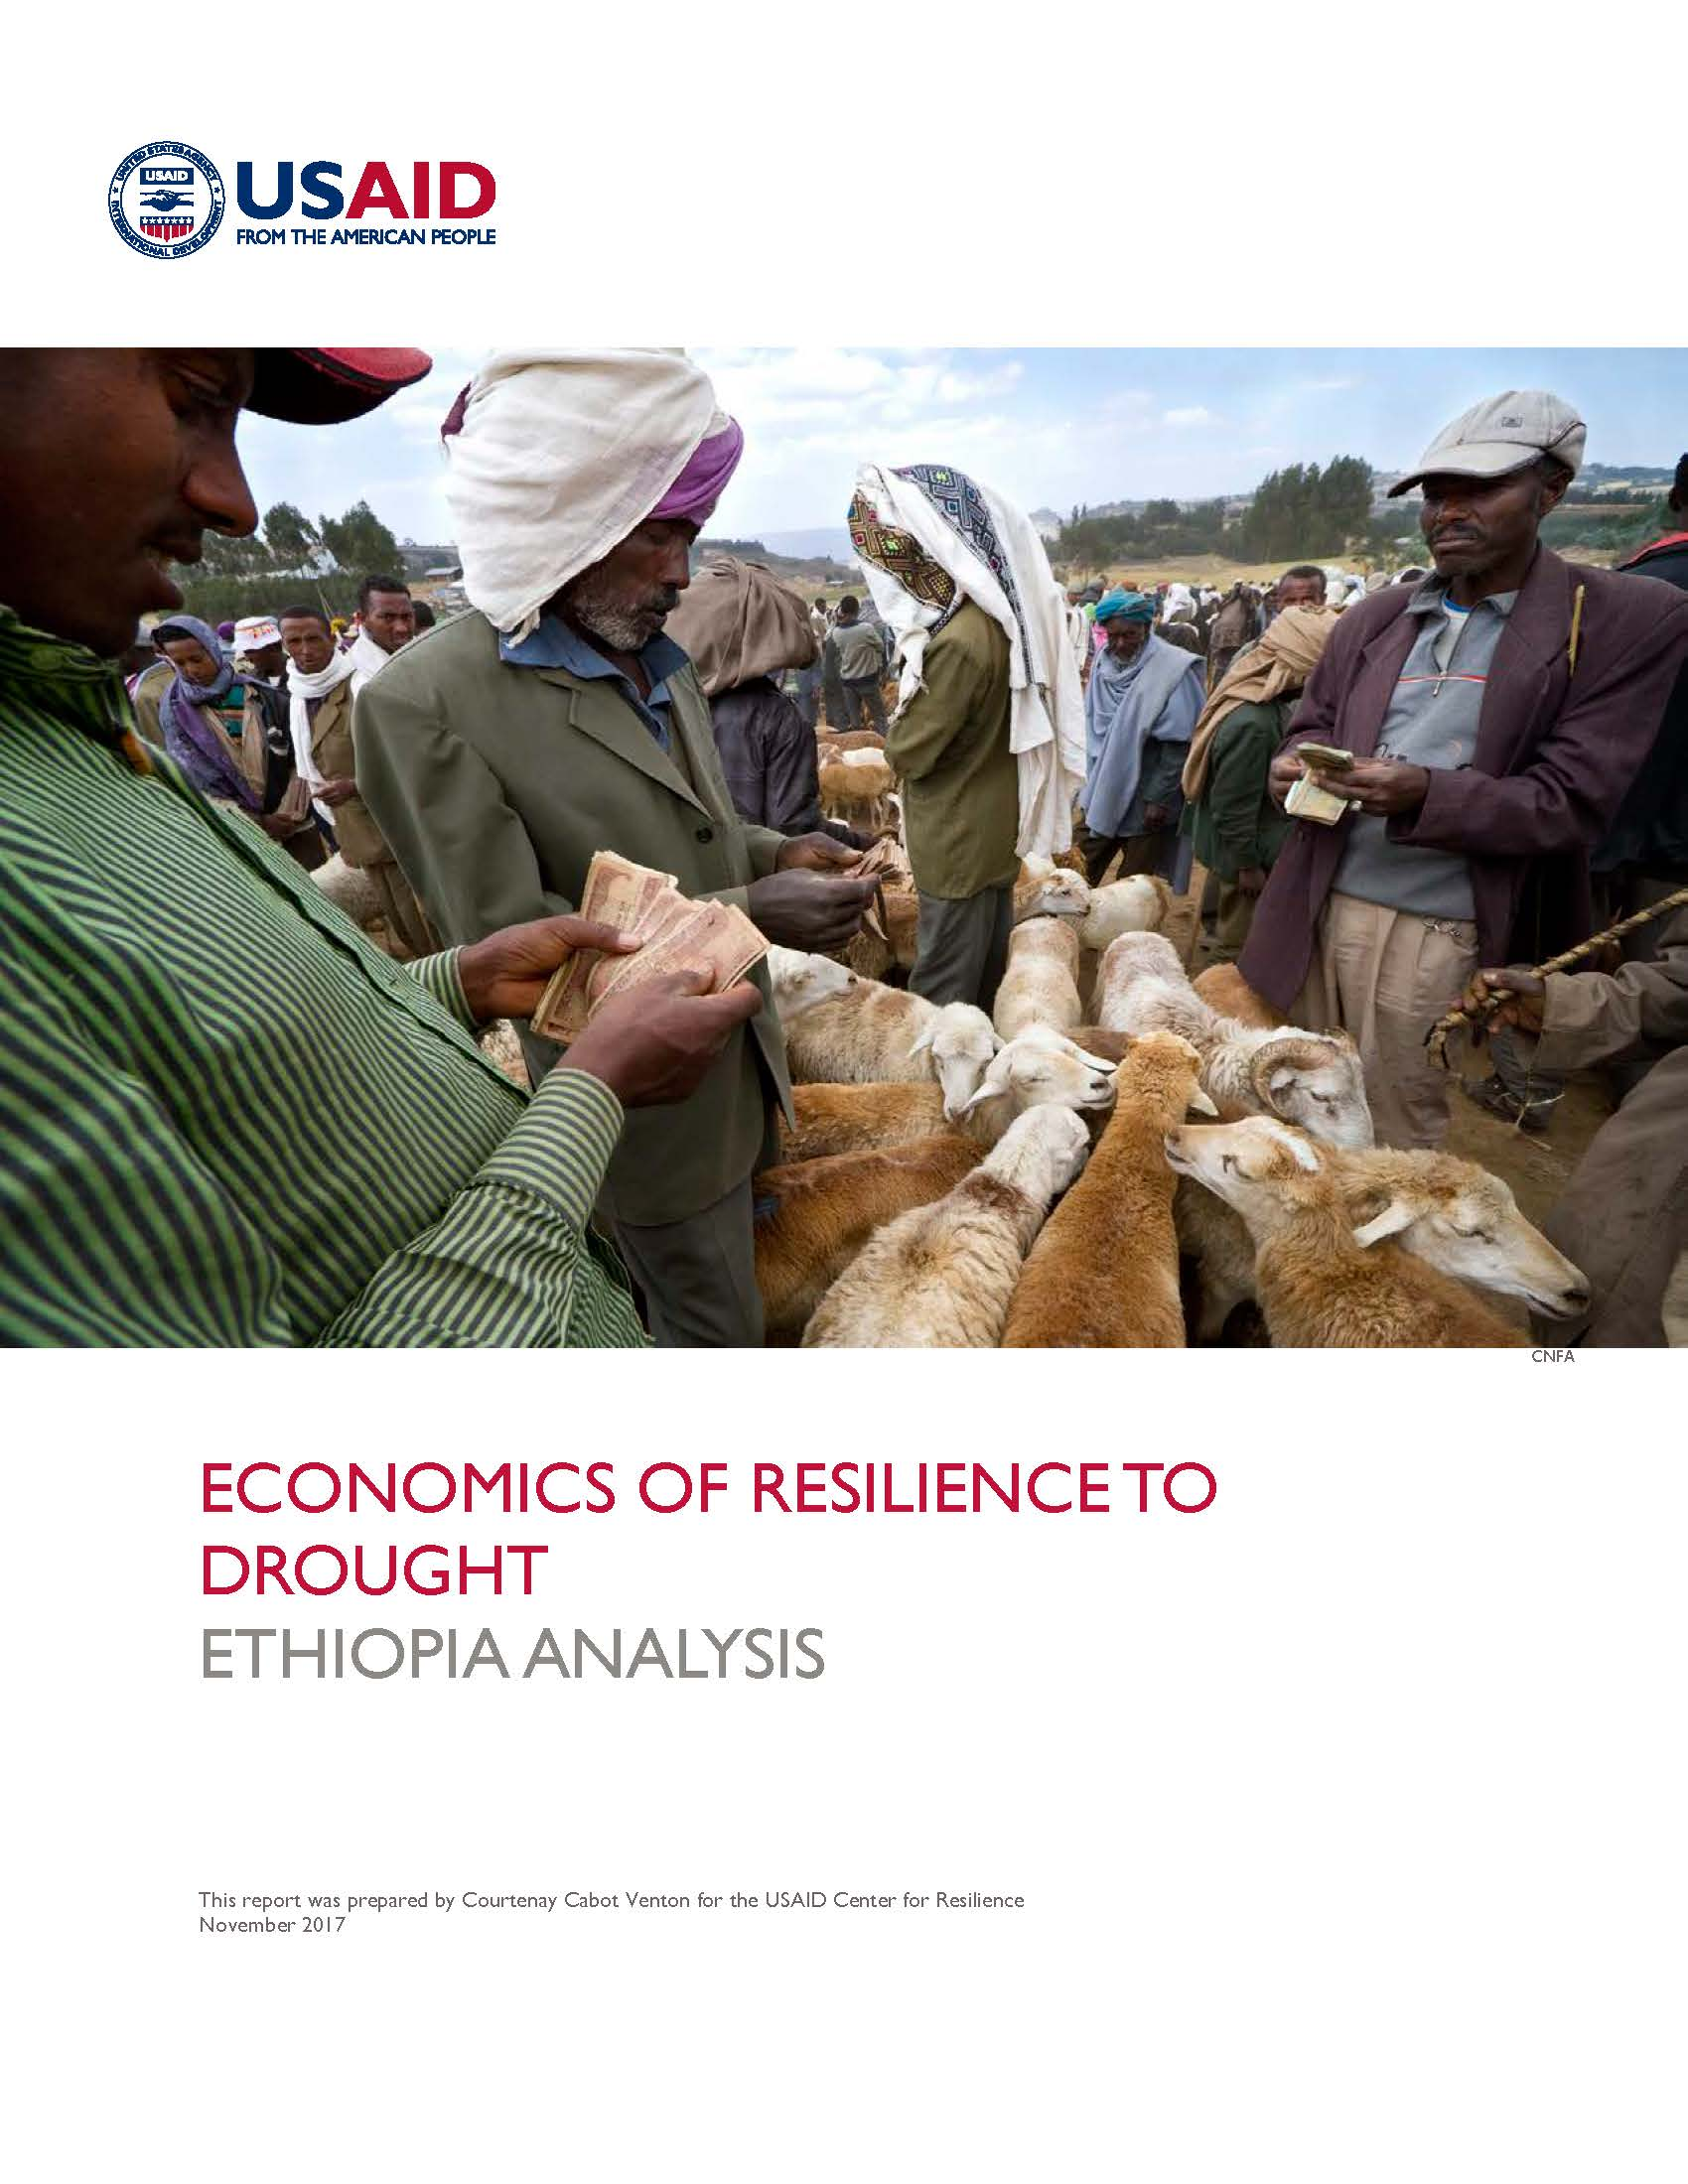 The Economics of Resilience to Drought in Ethiopia